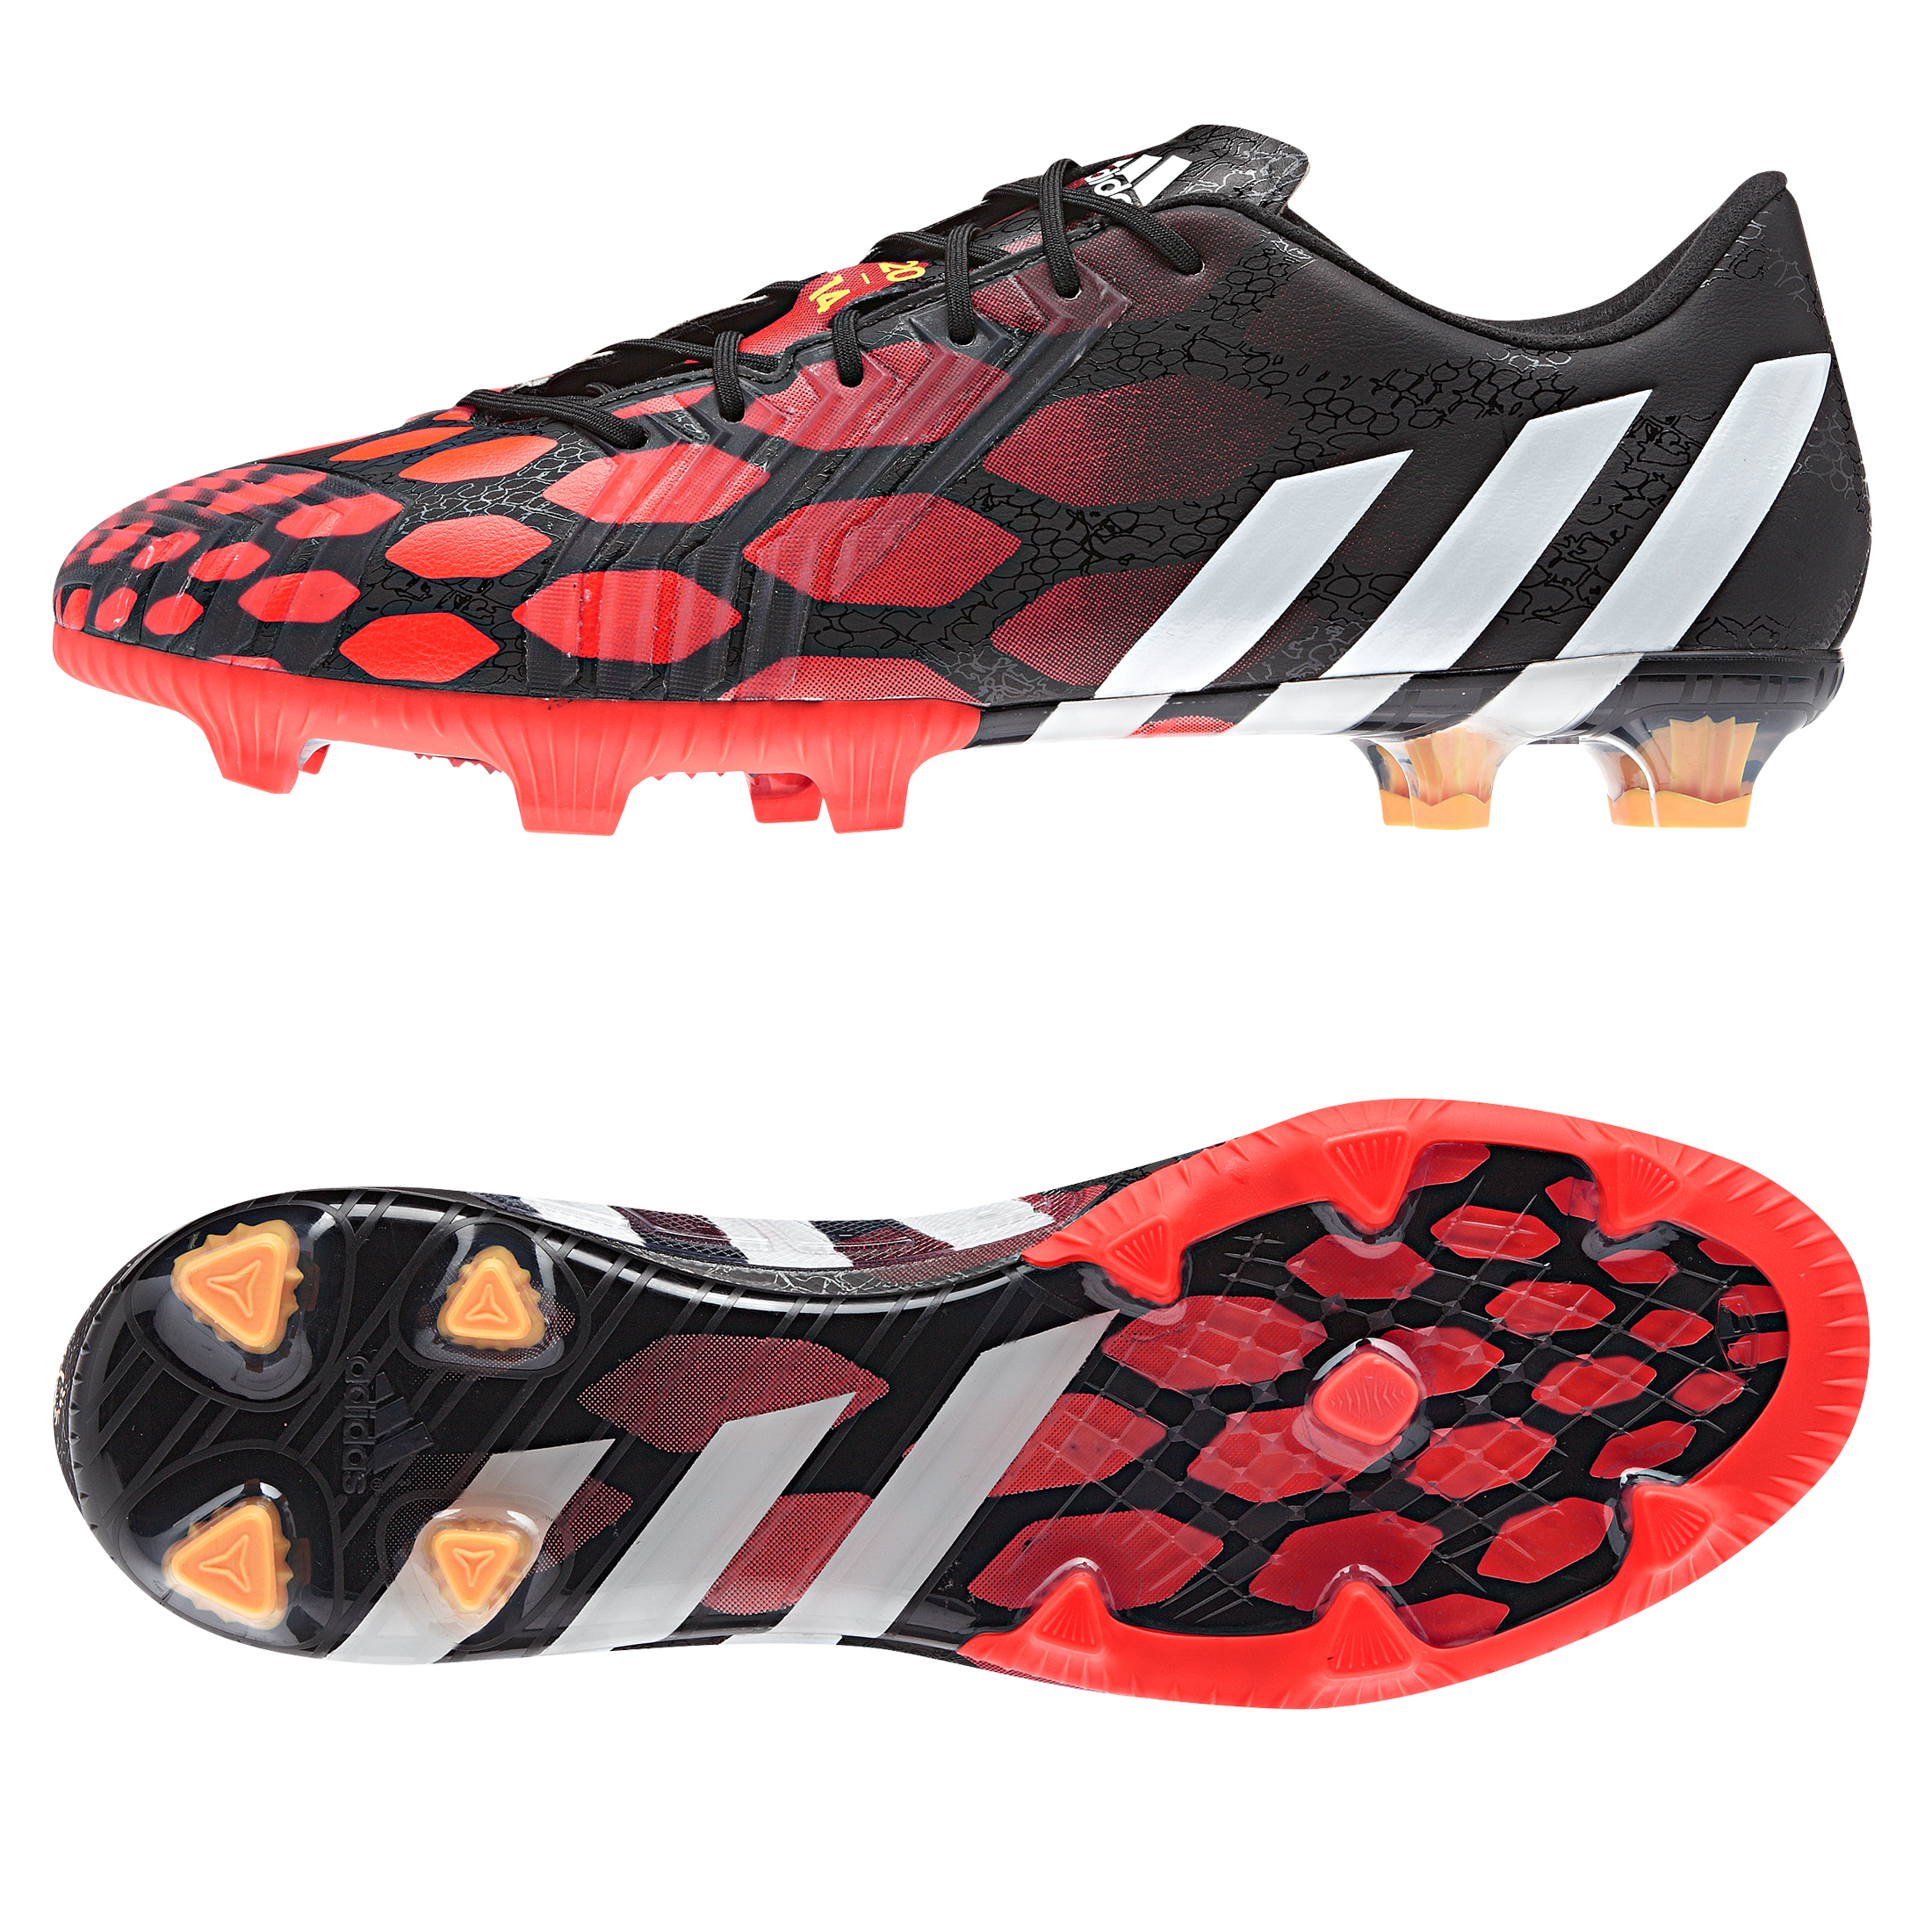 Adidas Predator LZ Firm Ground Football Boots Black